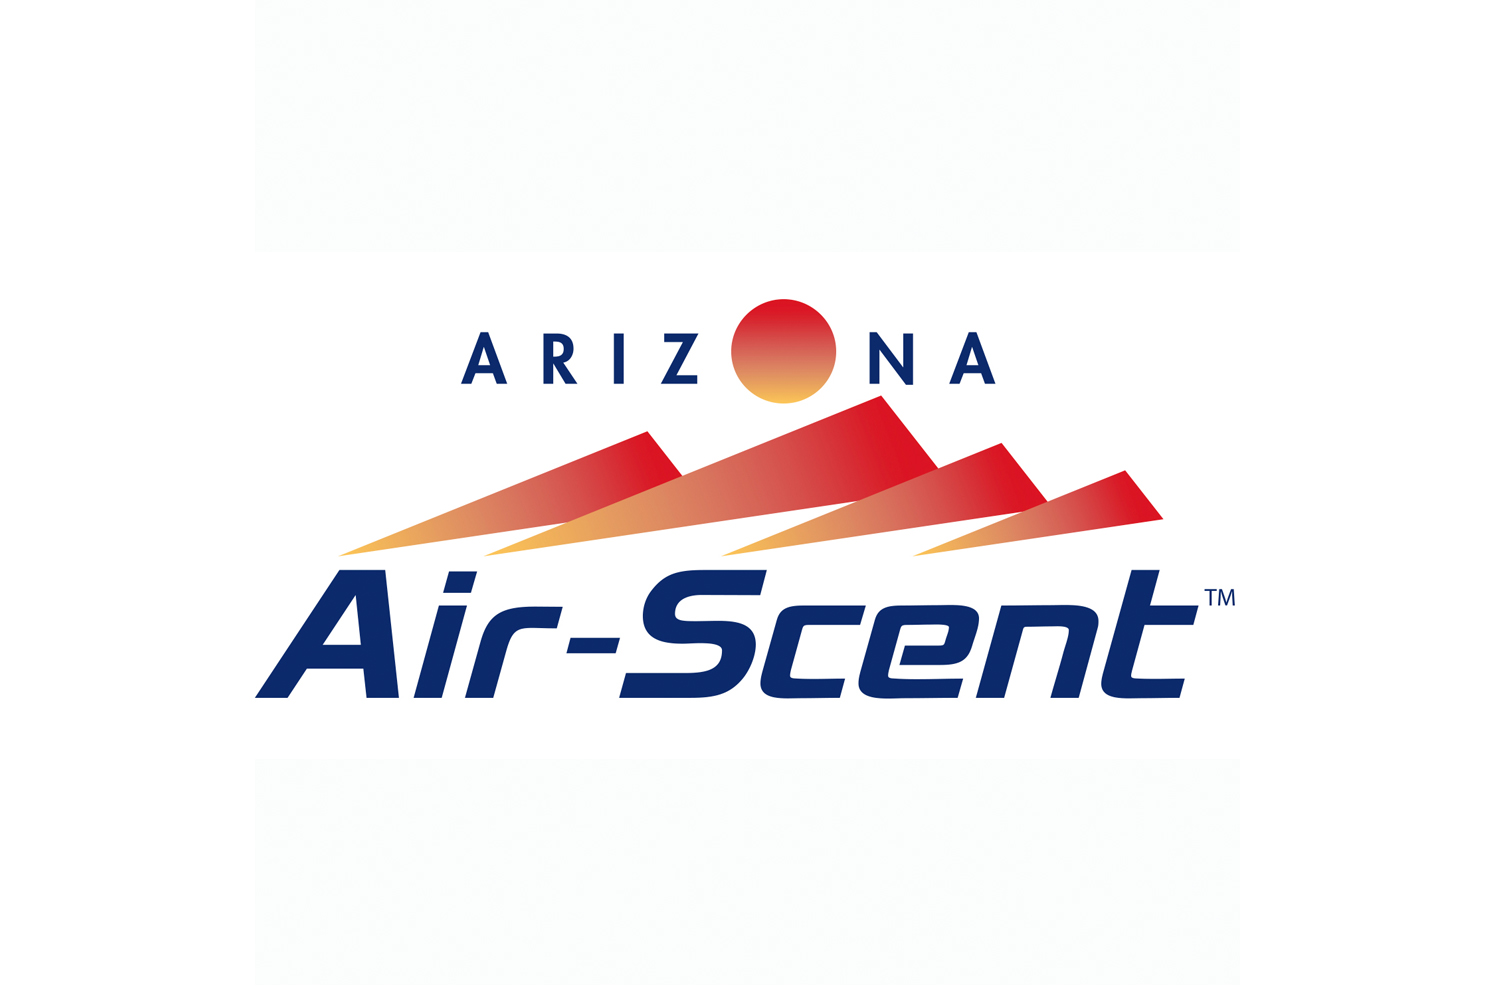 Logo design sample for Air-scent